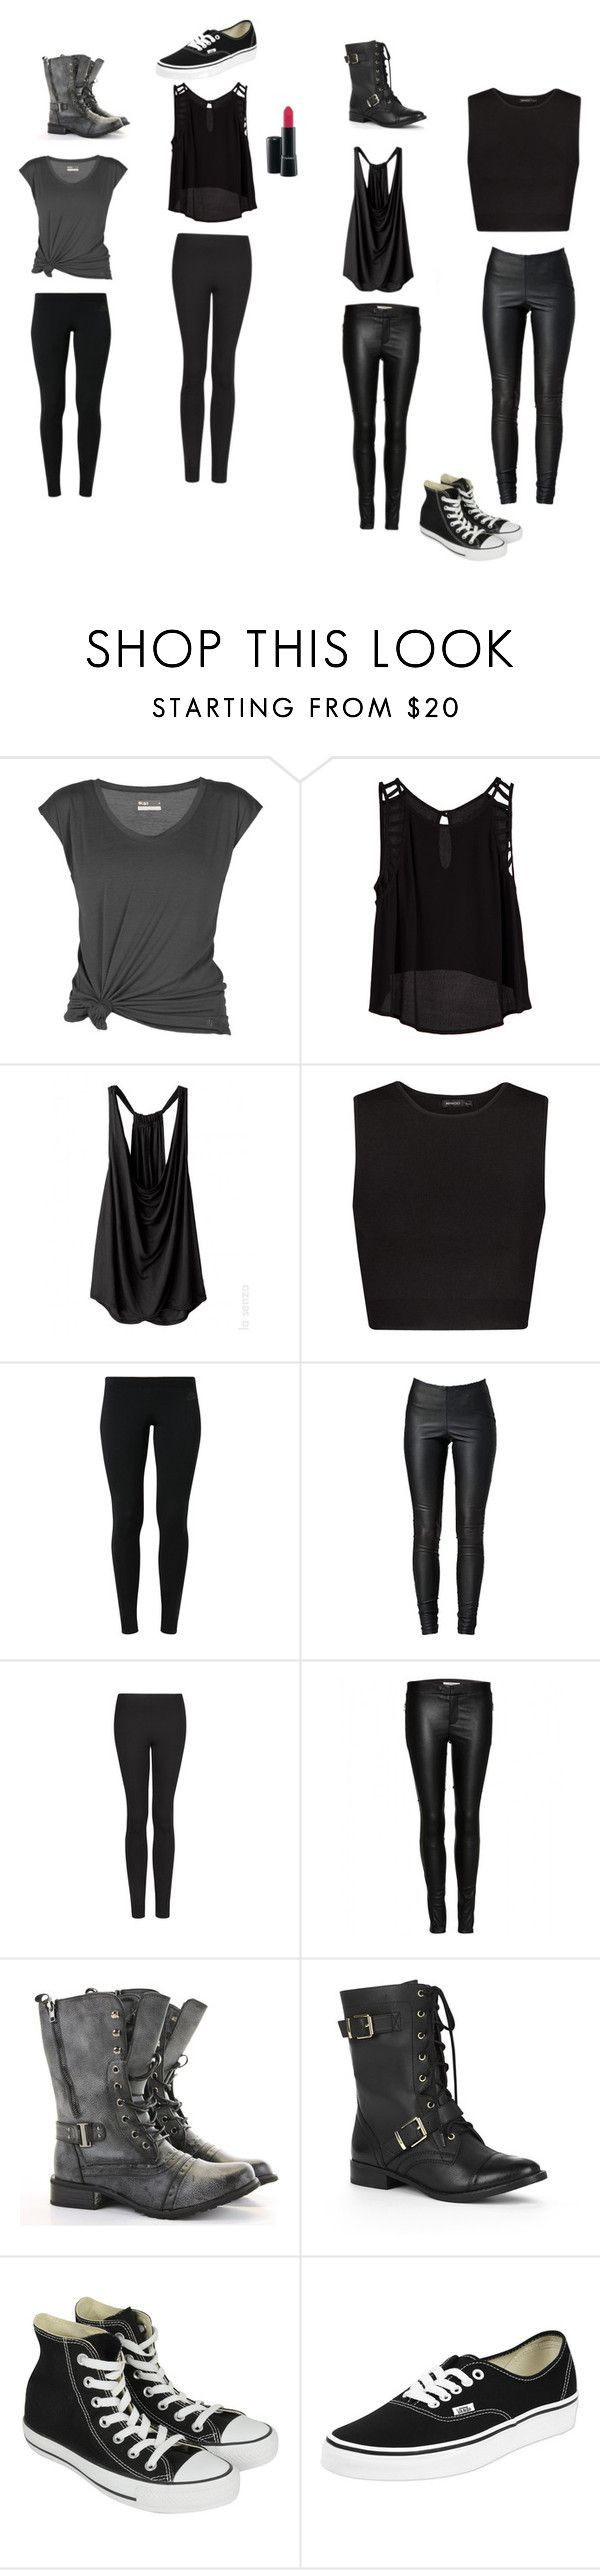 """""""Dauntless outfit"""" by i-love-divergent ❤ liked on Polyvore featuring Lija, Lush Clothing, MANGO, NIKE, VILA, J Brand, CO, Sole Society, Converse and Vans"""